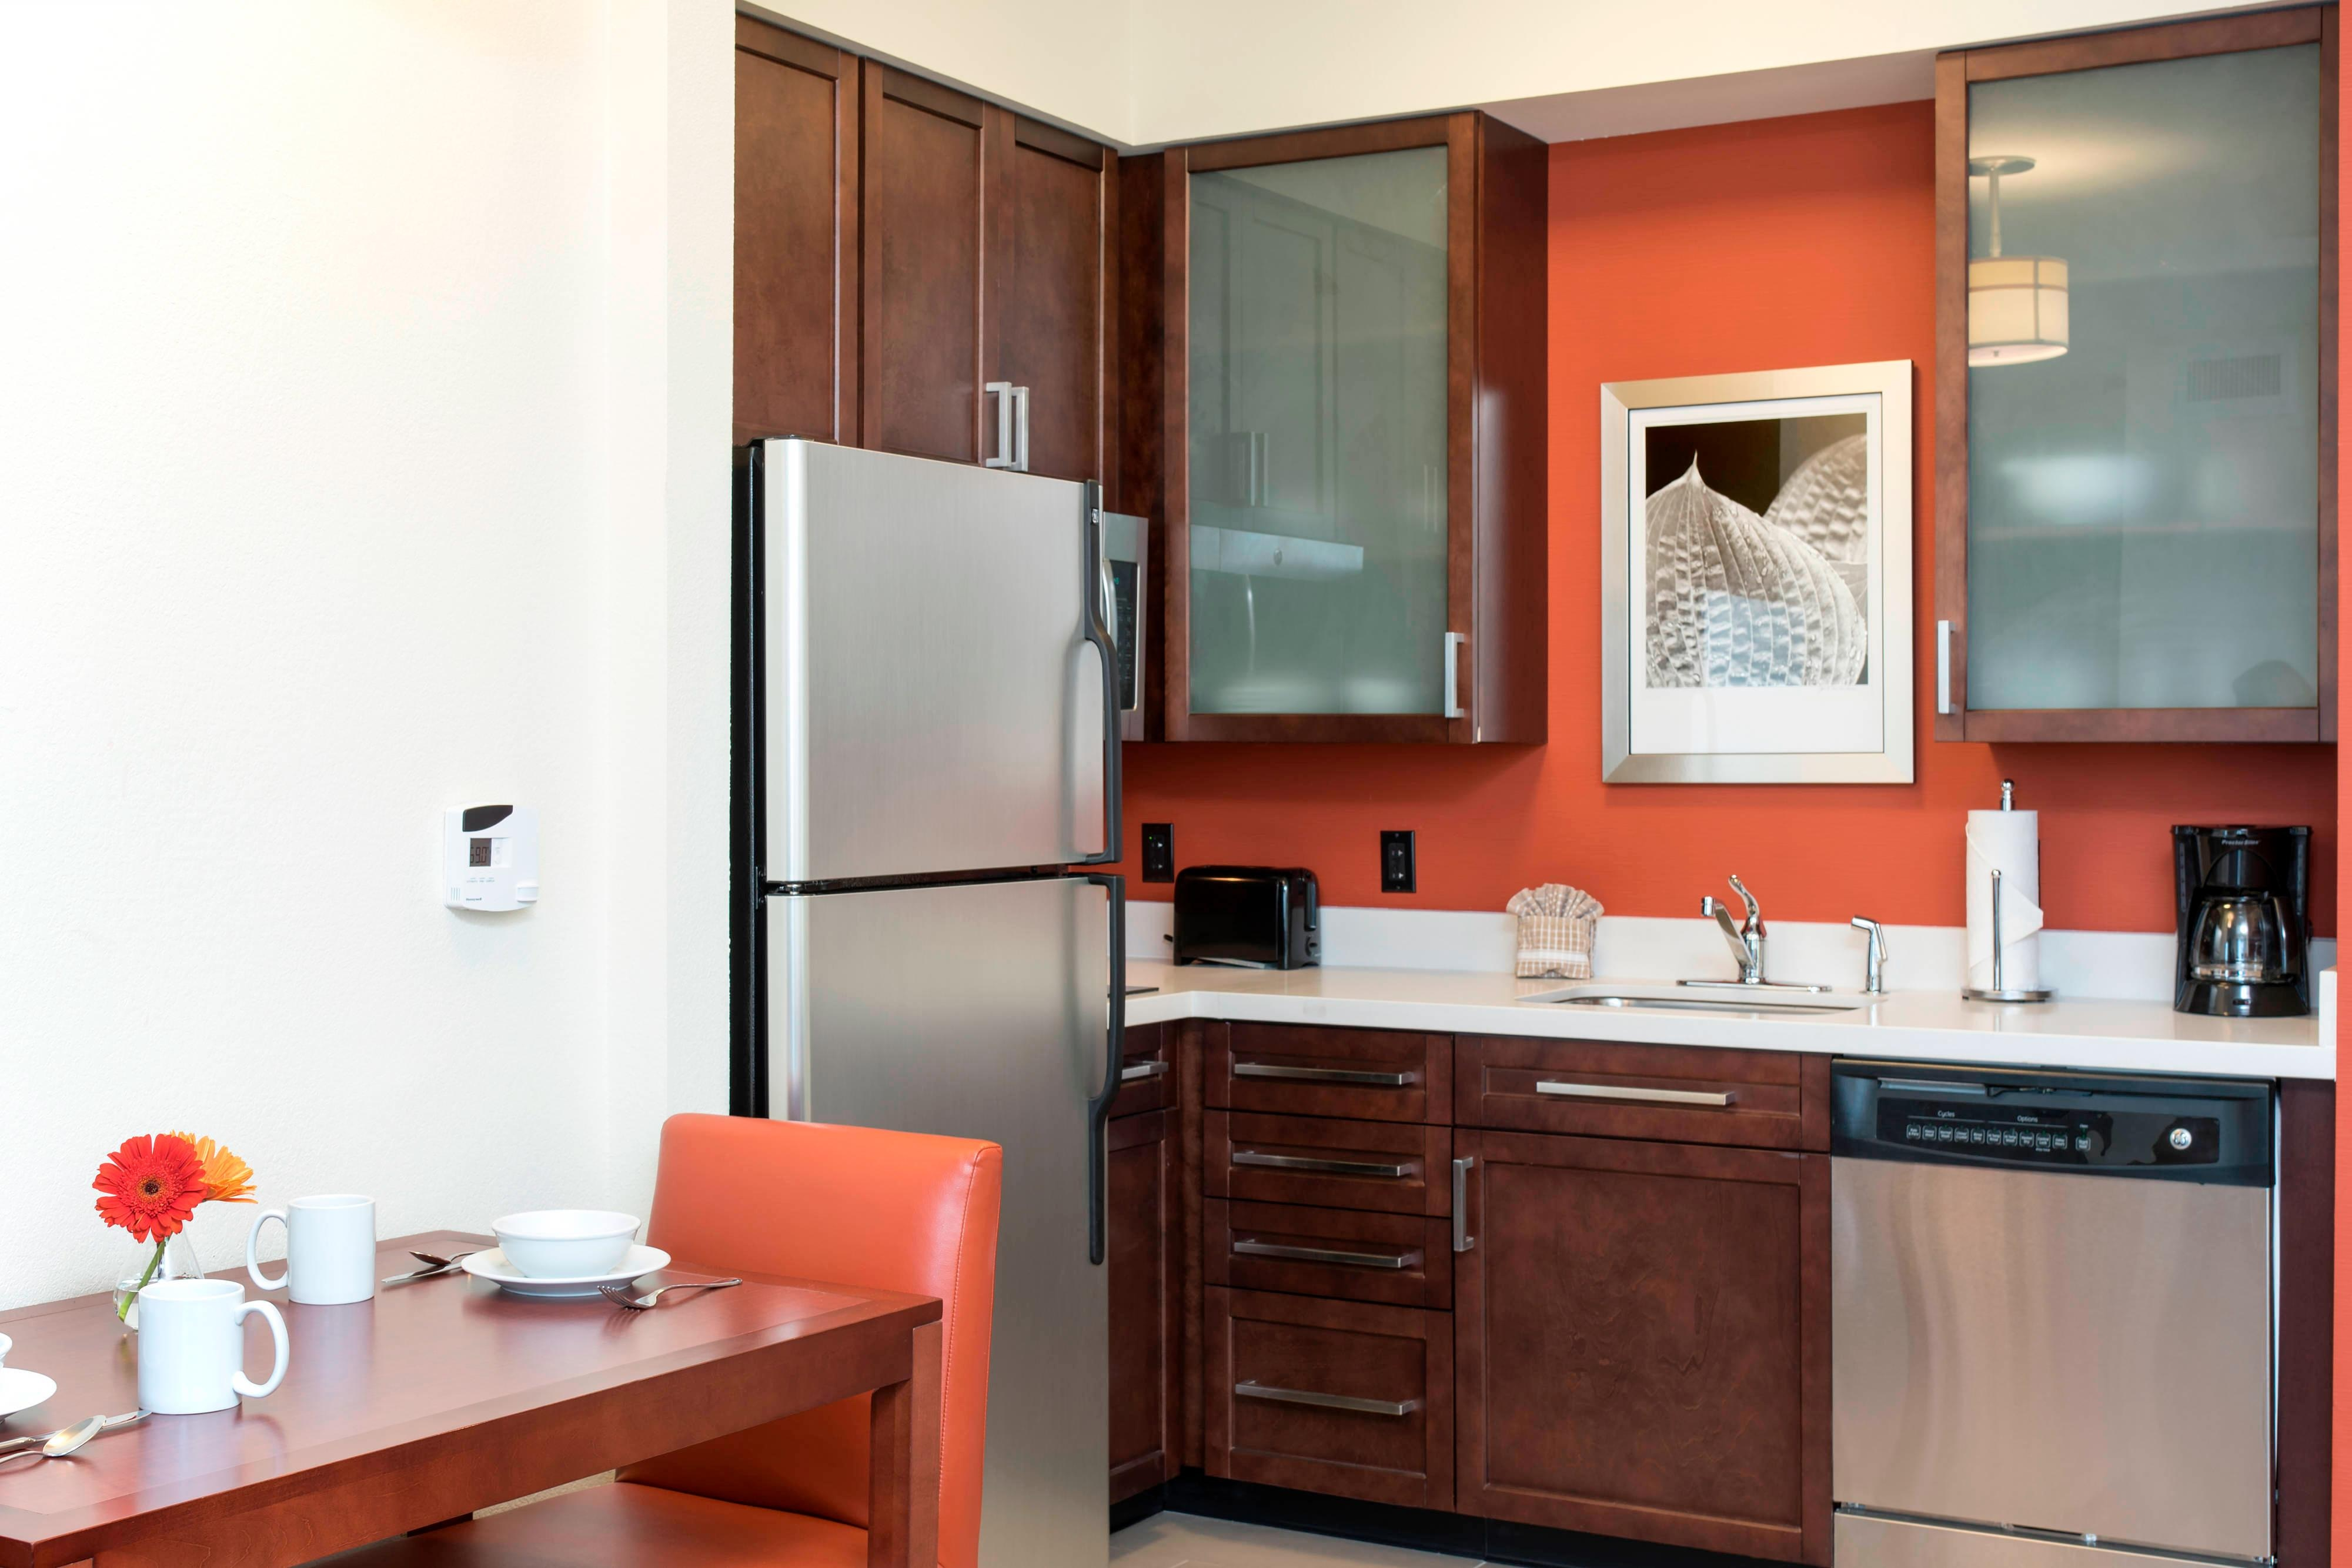 Studio-Suite Kitchen - Residence Inn Austin-University Area